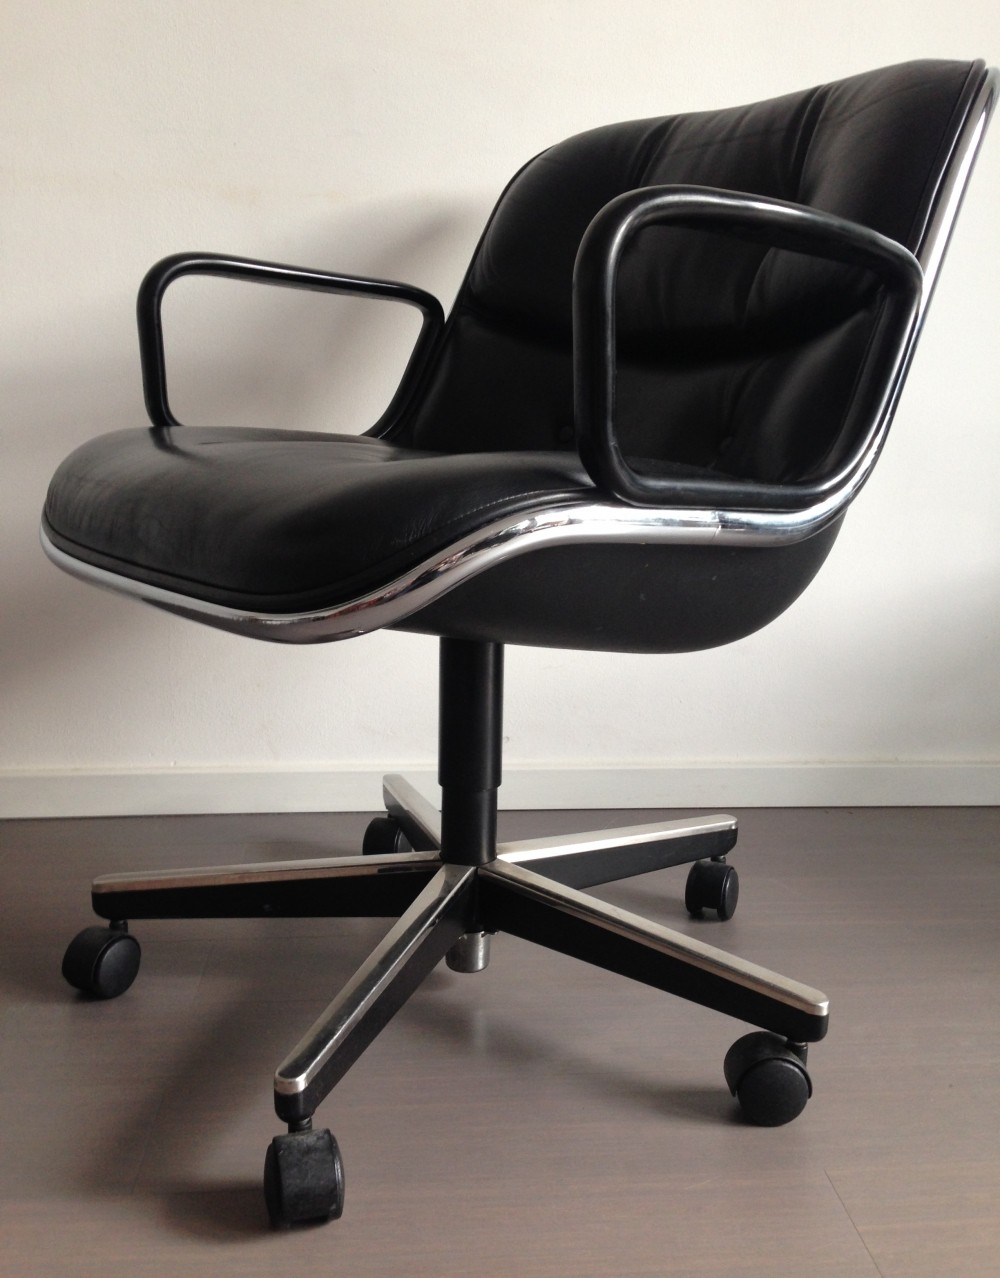 2 x office chaircharles pollock for knoll, 1960s | #58471